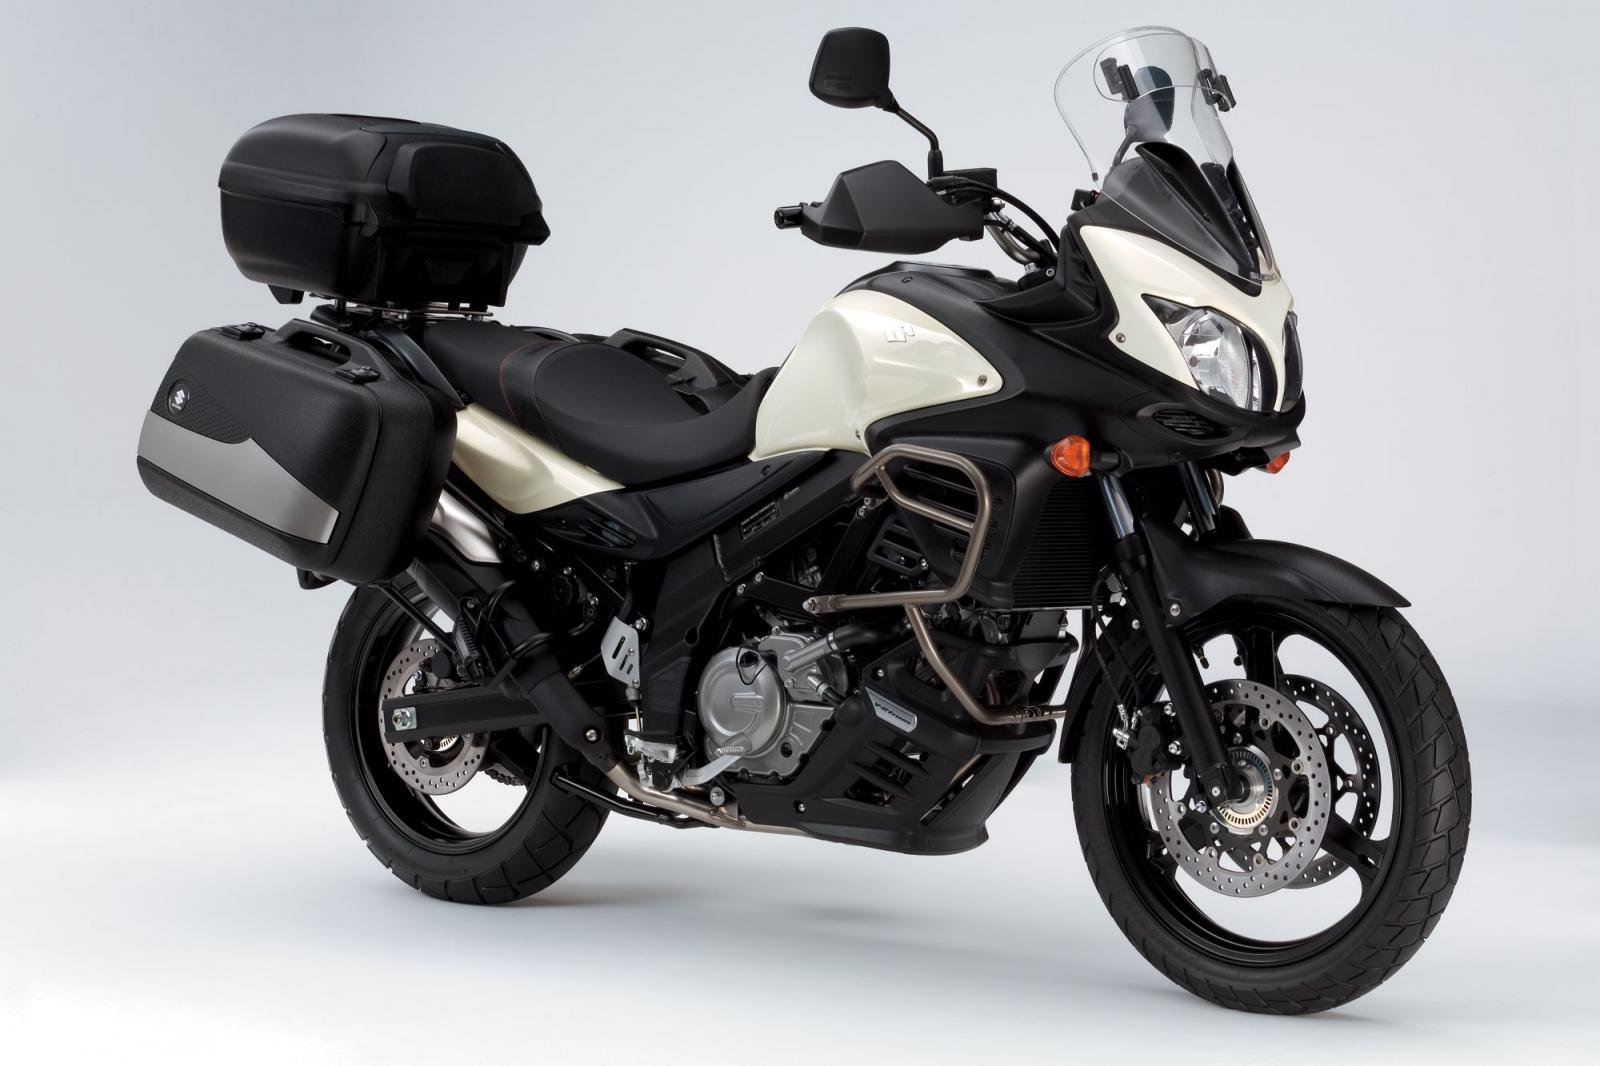 2012 suzuki v strom 650 abs moto zombdrive com. Black Bedroom Furniture Sets. Home Design Ideas